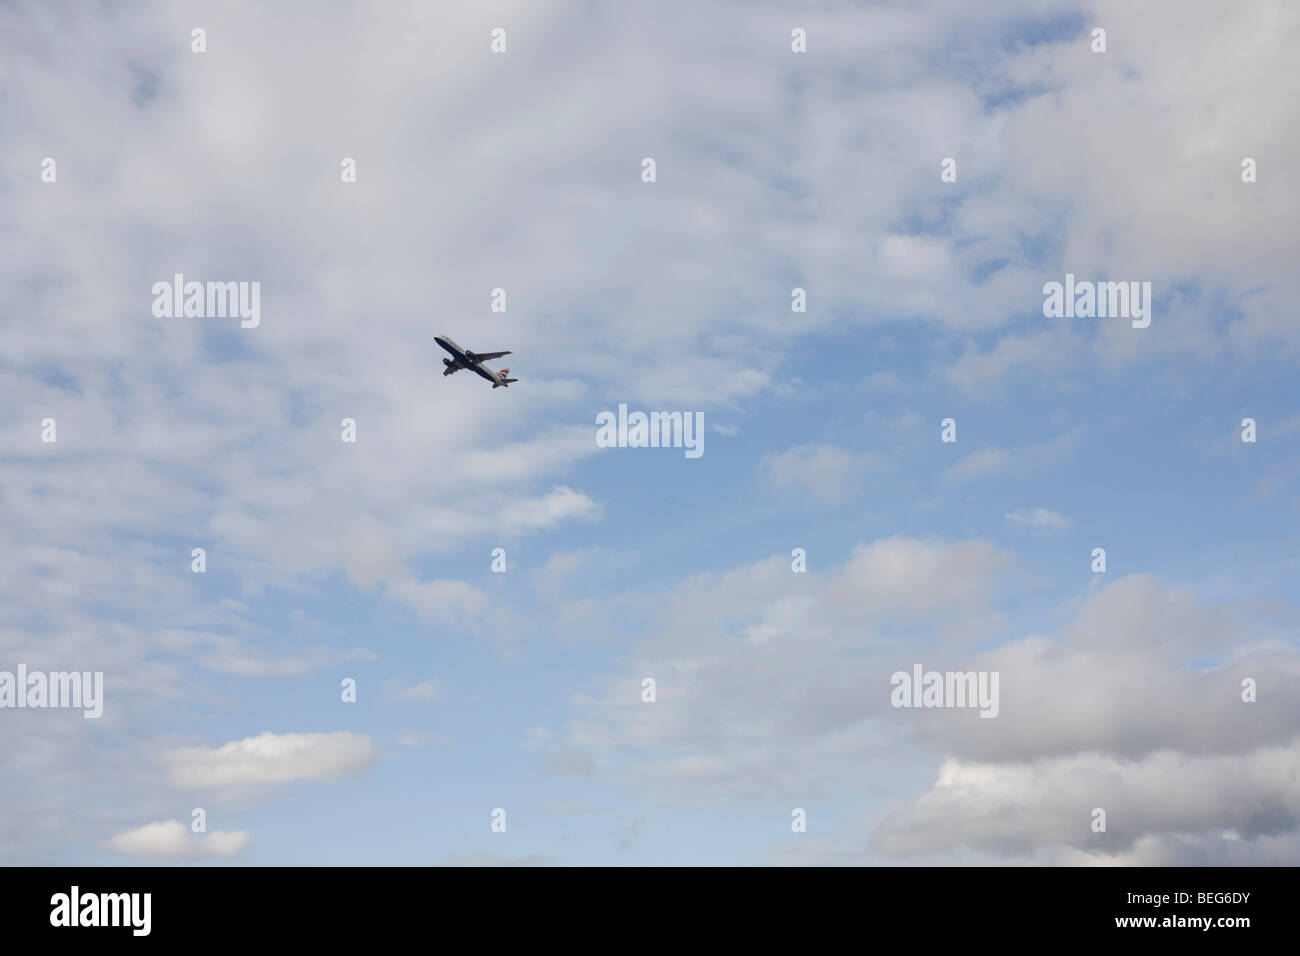 Sixth of a sequence of 8 consecutive images, a jet airliner takes-off over afternoon skies above London's Heathrow - Stock Image